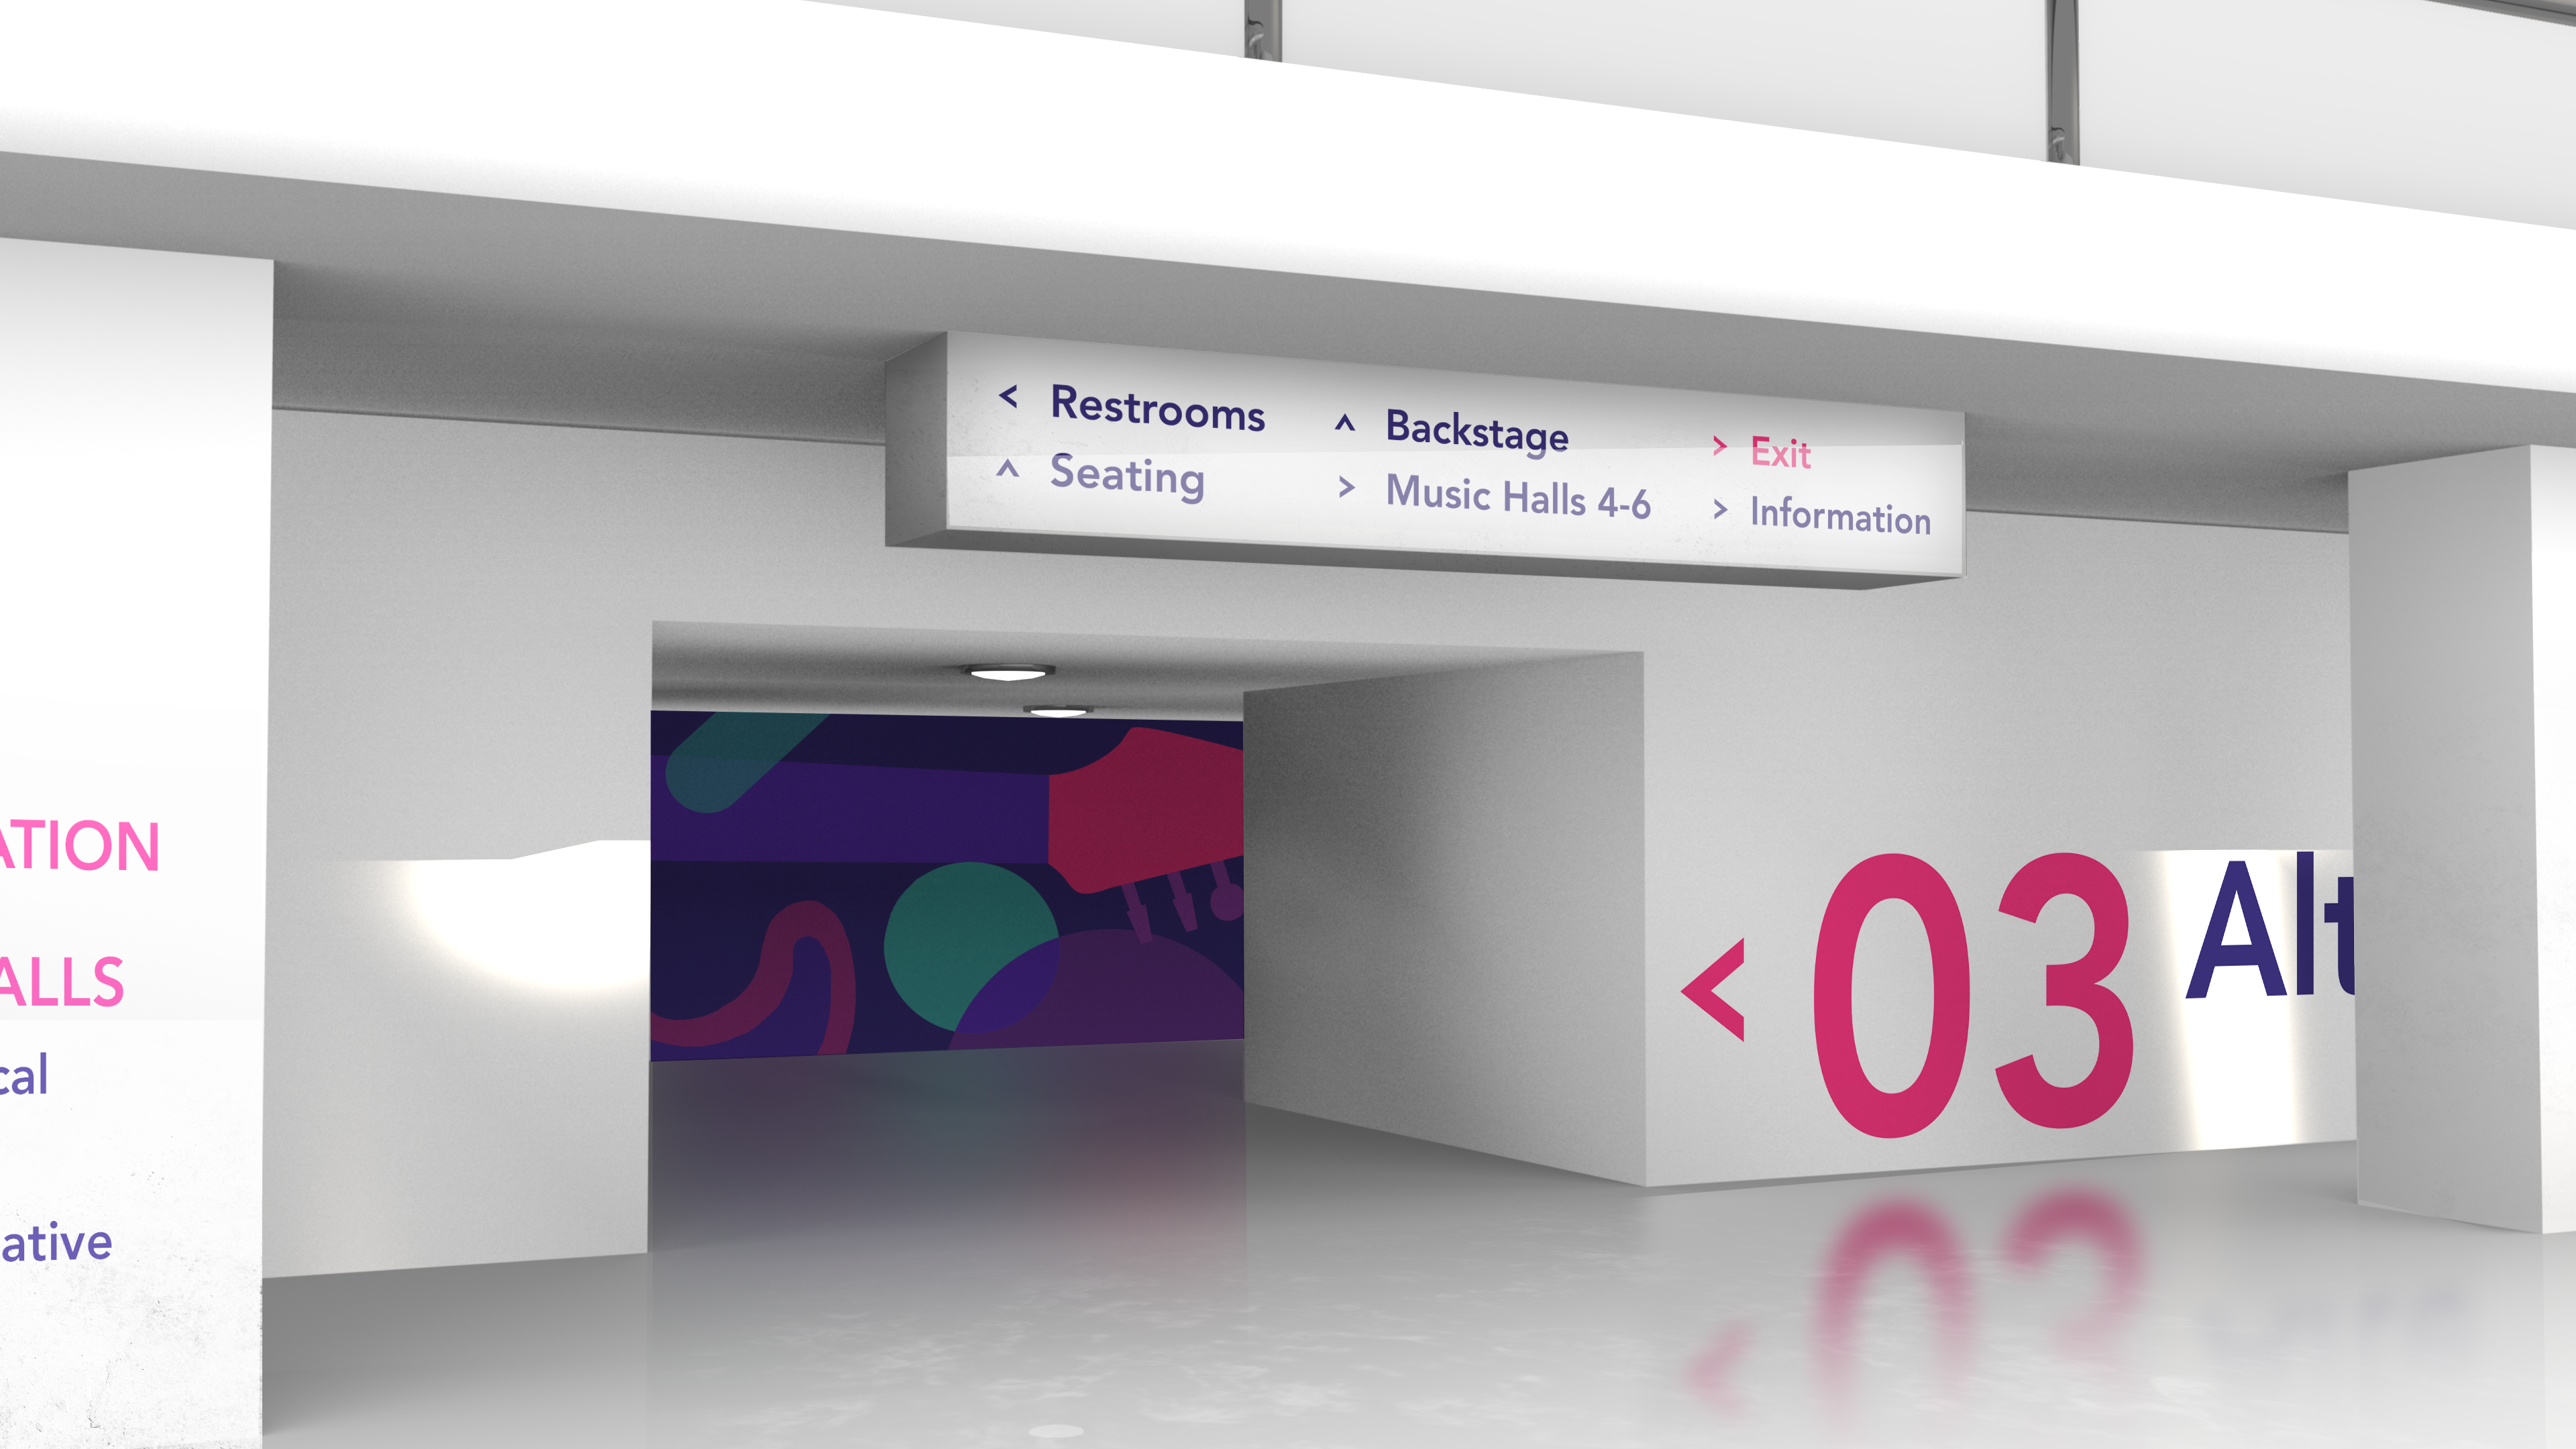 image of crescendo wayfinding showing genre-themed patterns in a hallway leading to a concert hall